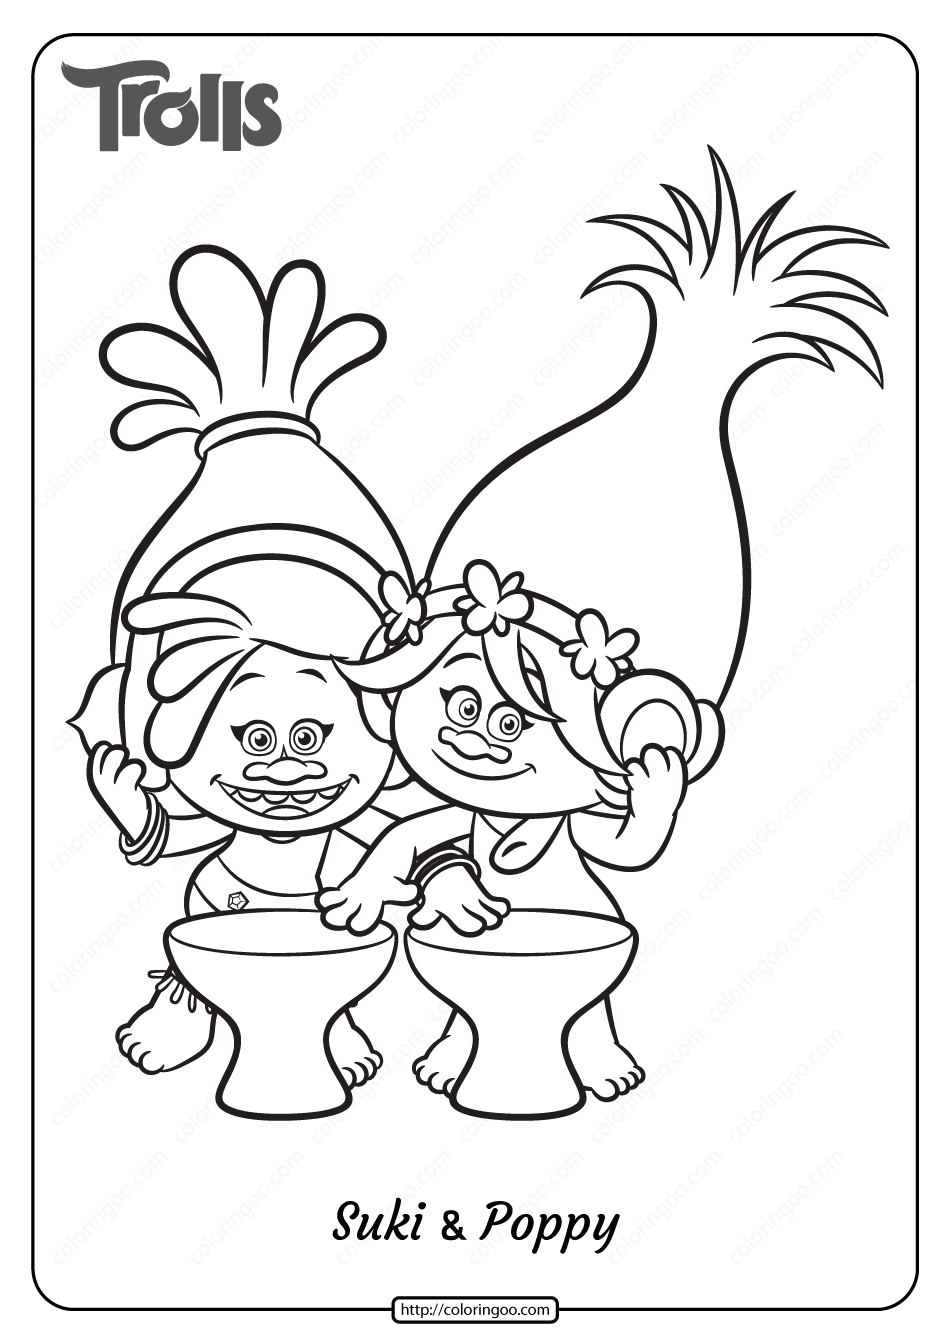 Free Trolls Suki and Poppy Pdf Coloring Page